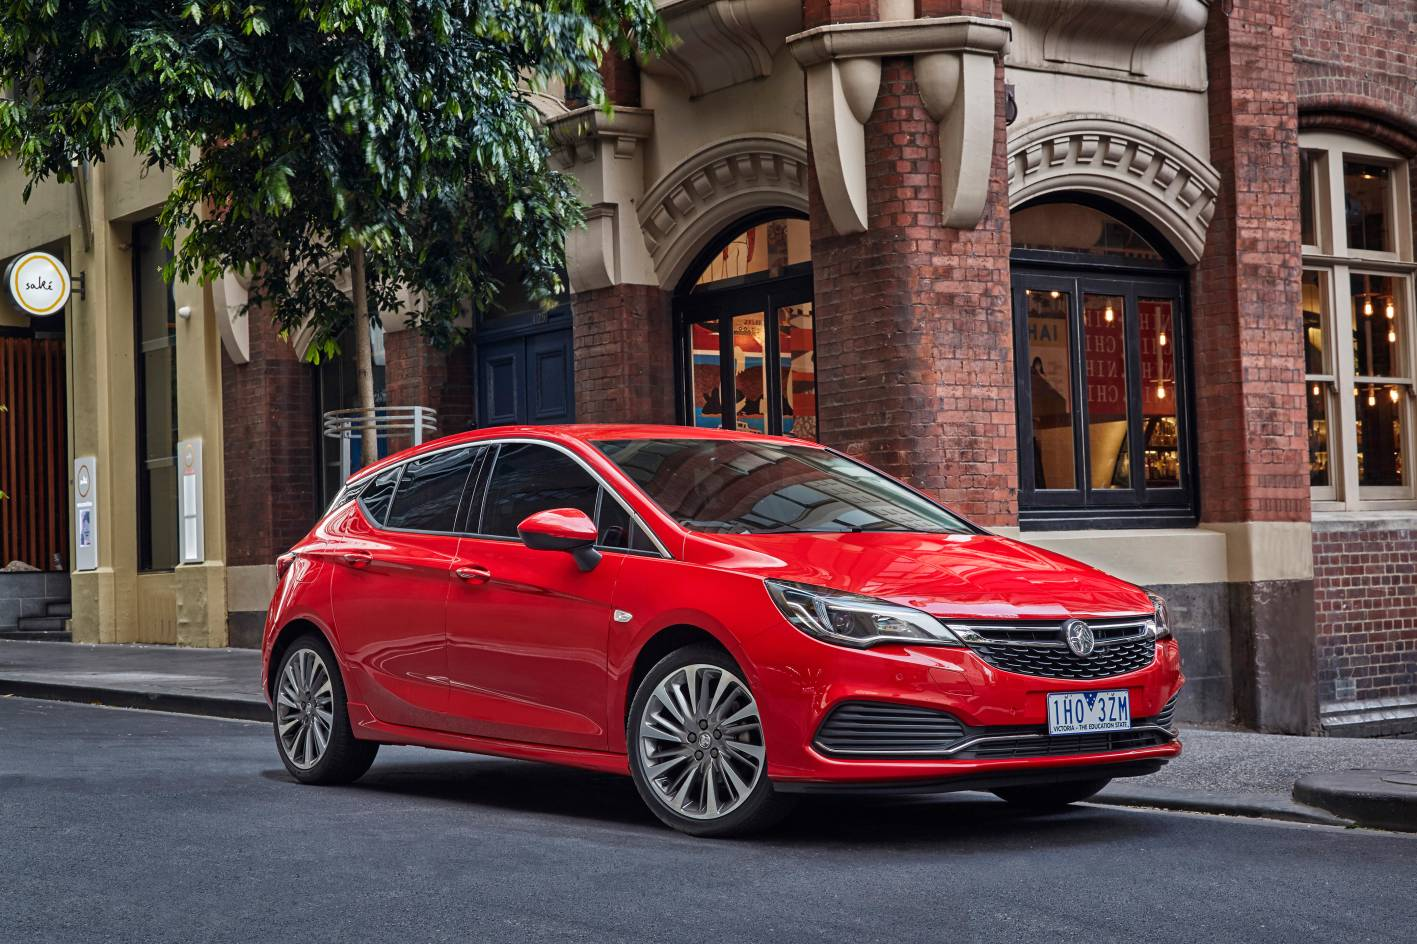 Holden's 'fast track to obscurity' and sale of Opel (which builds the Astra in Poland) to the French could easily mean the Astra becomes a depreciation disaster for owners